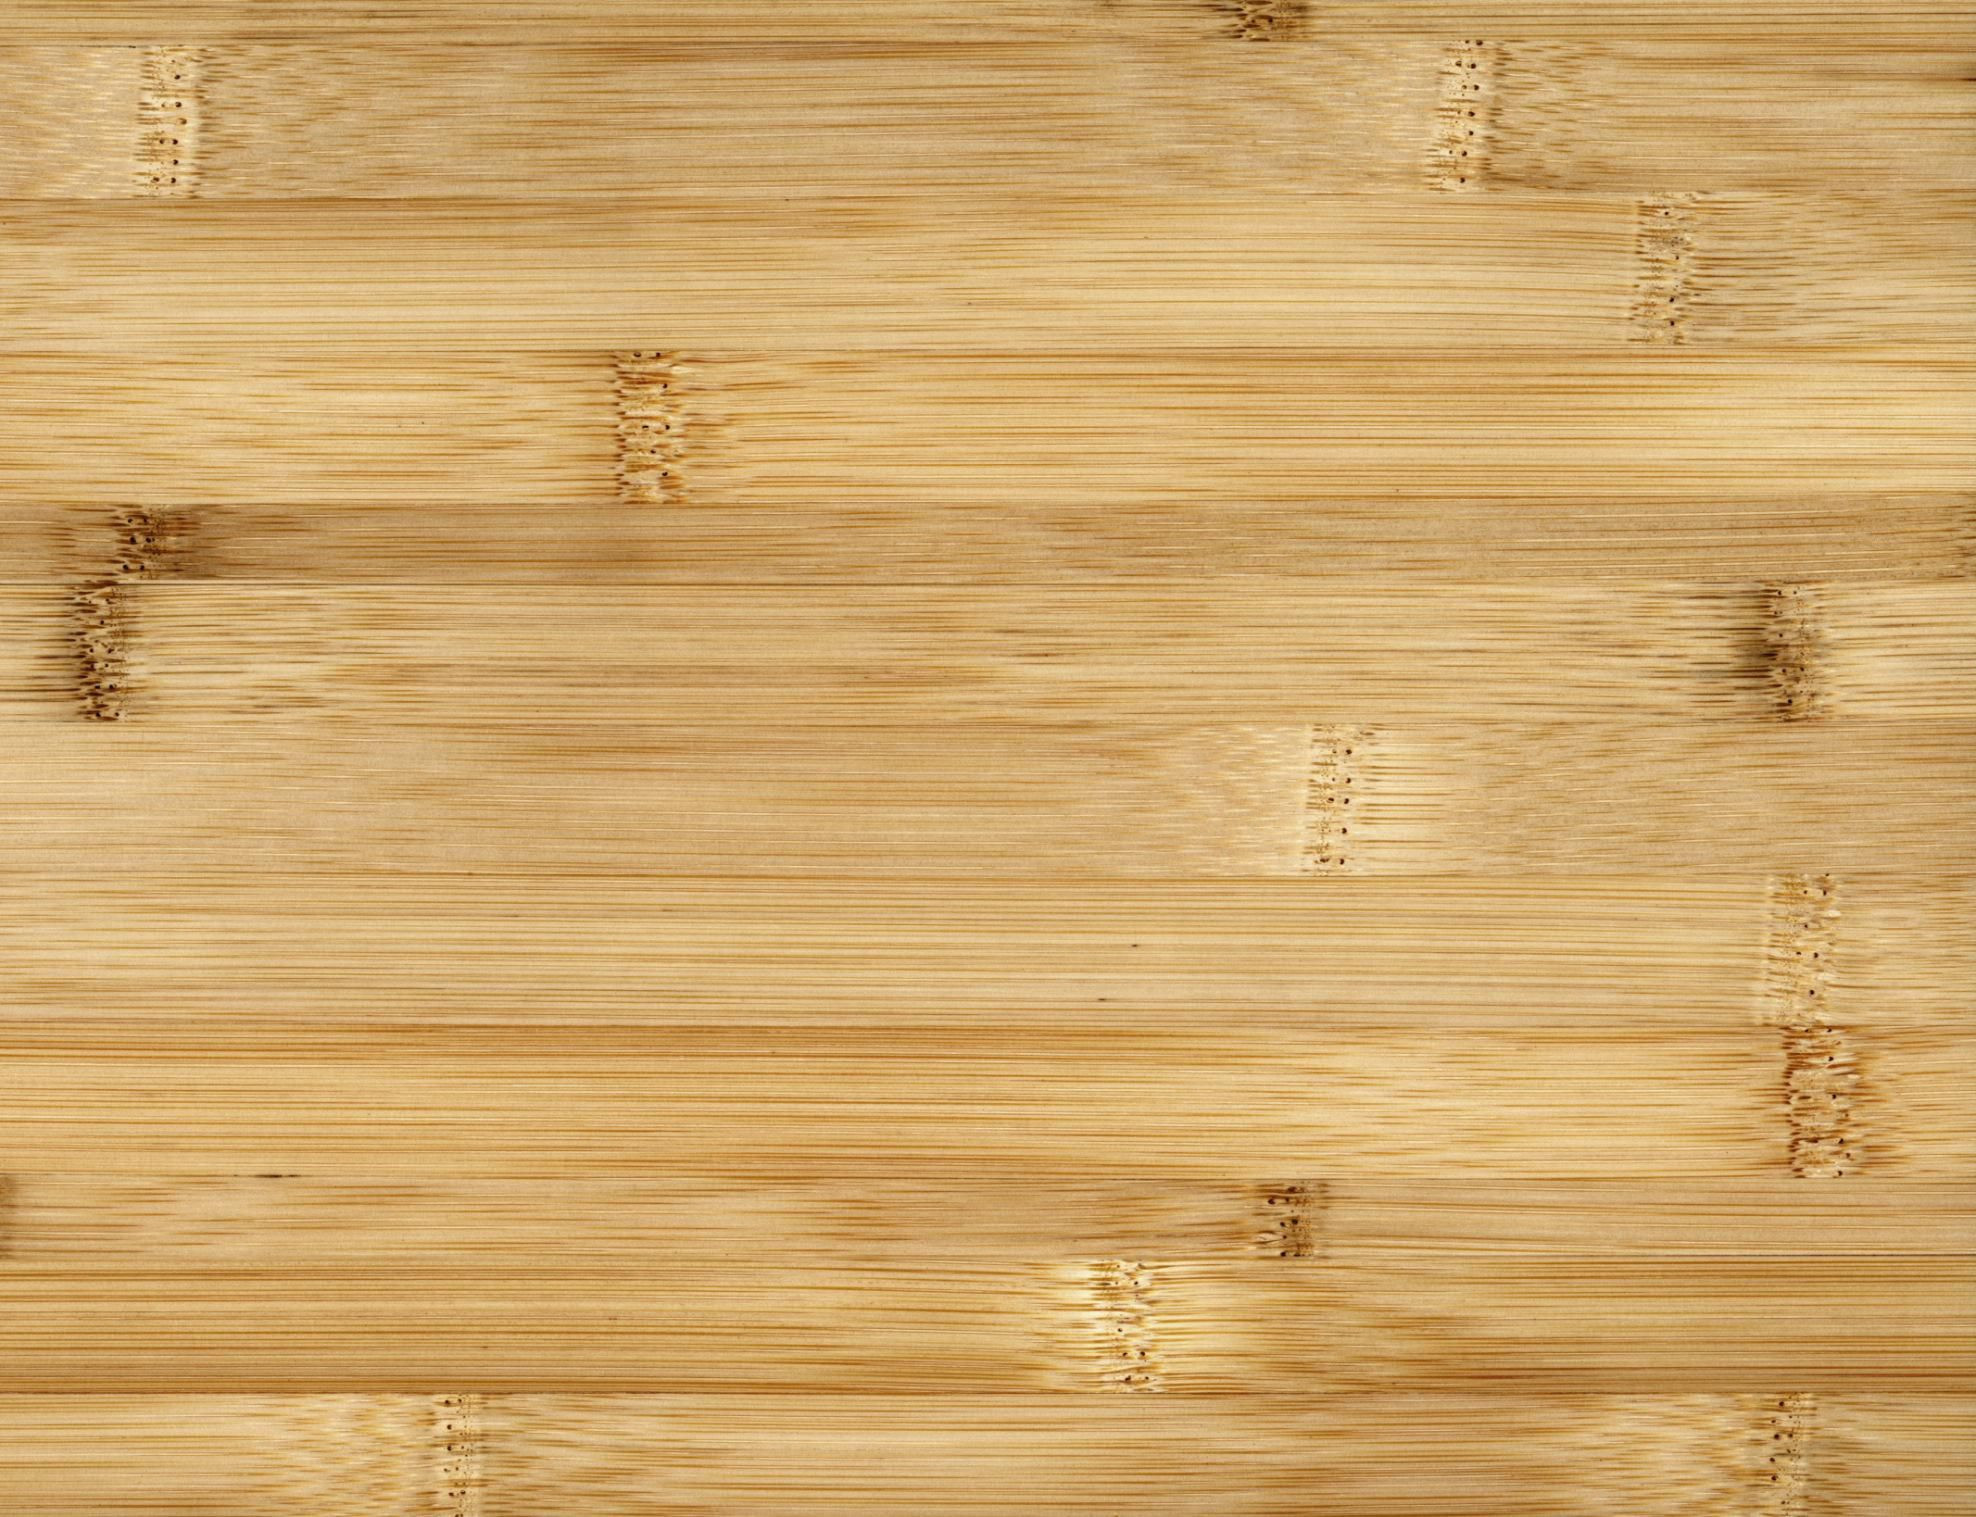 bruce hardwood and laminate floor cleaner msds of how to clean bamboo flooring within 200266305 001 56a2fd815f9b58b7d0d000cd